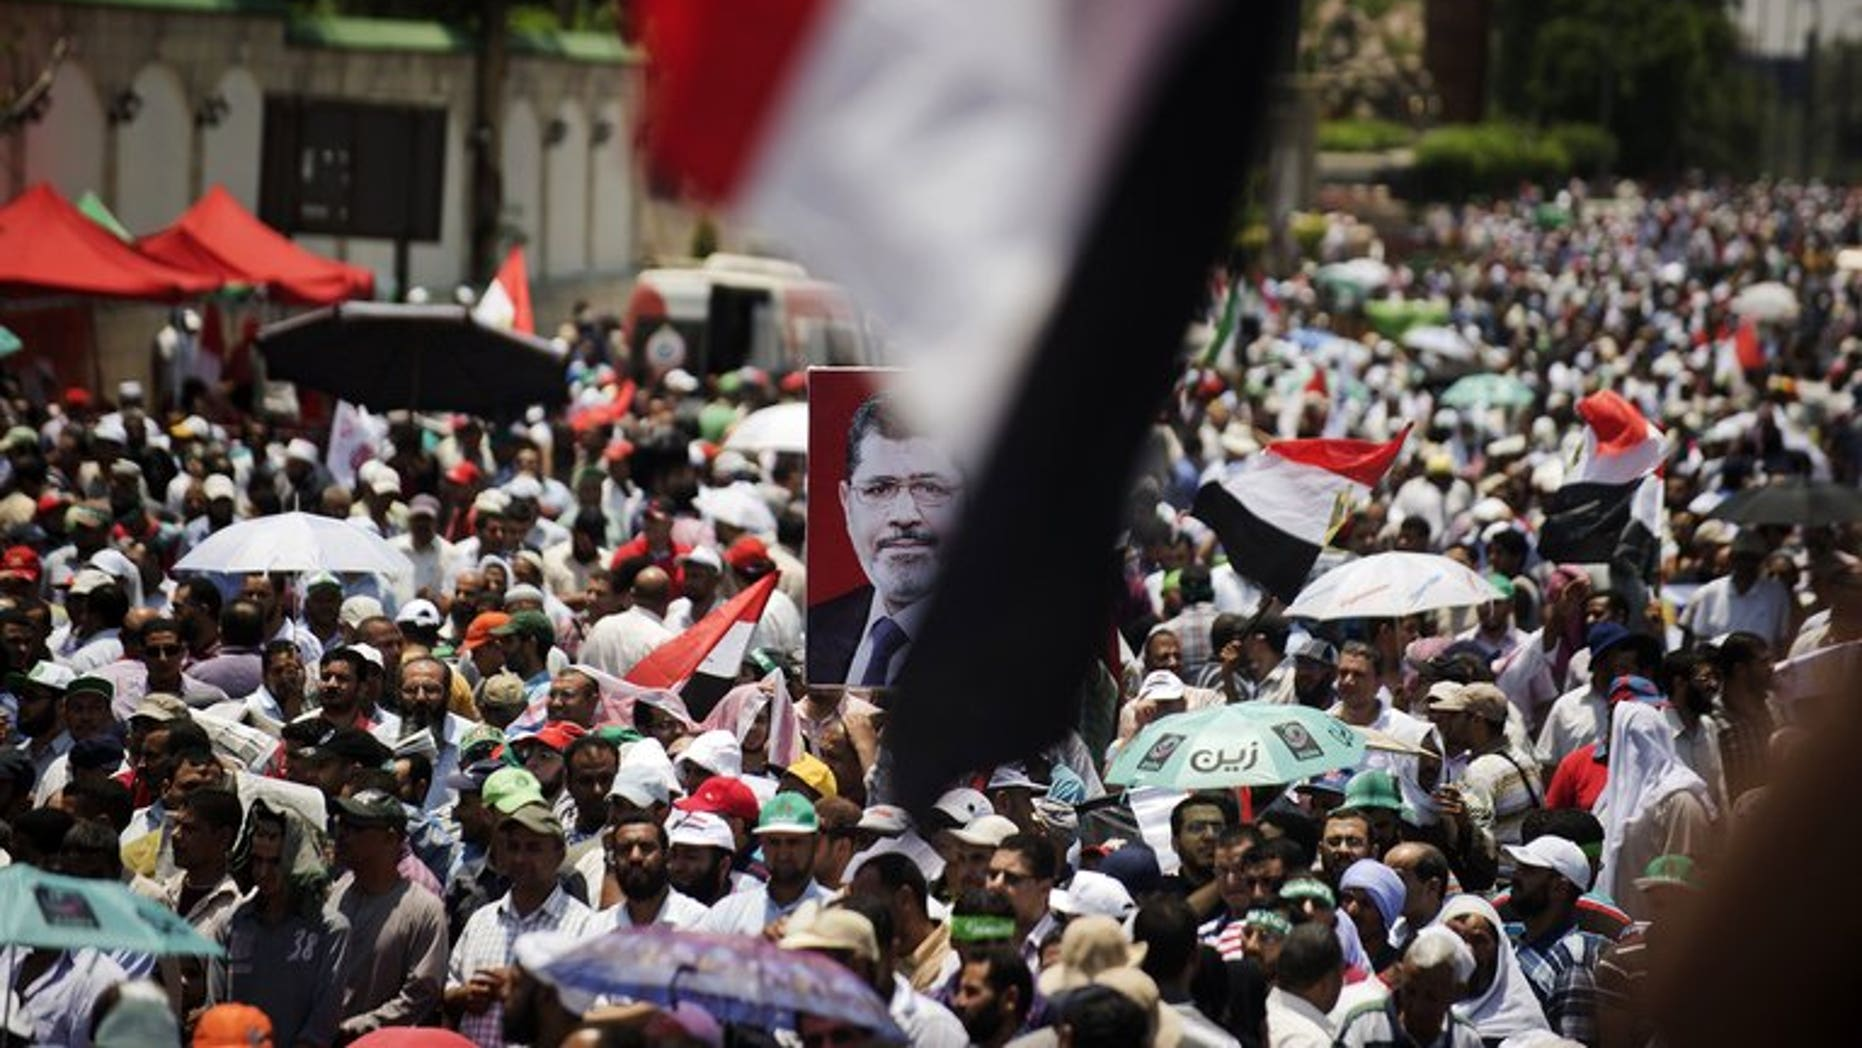 Egyptian Islamist groups led by the ruling Muslim Brotherhood mark the upcoming one-year anniversary since President Mohamed Morsi was elected, on June 21, 2013, in Cairo. Egypt's defence minister has warned that the army will intervene if violence breaks out in the country where opponents of Morsi are planning rallies against him.